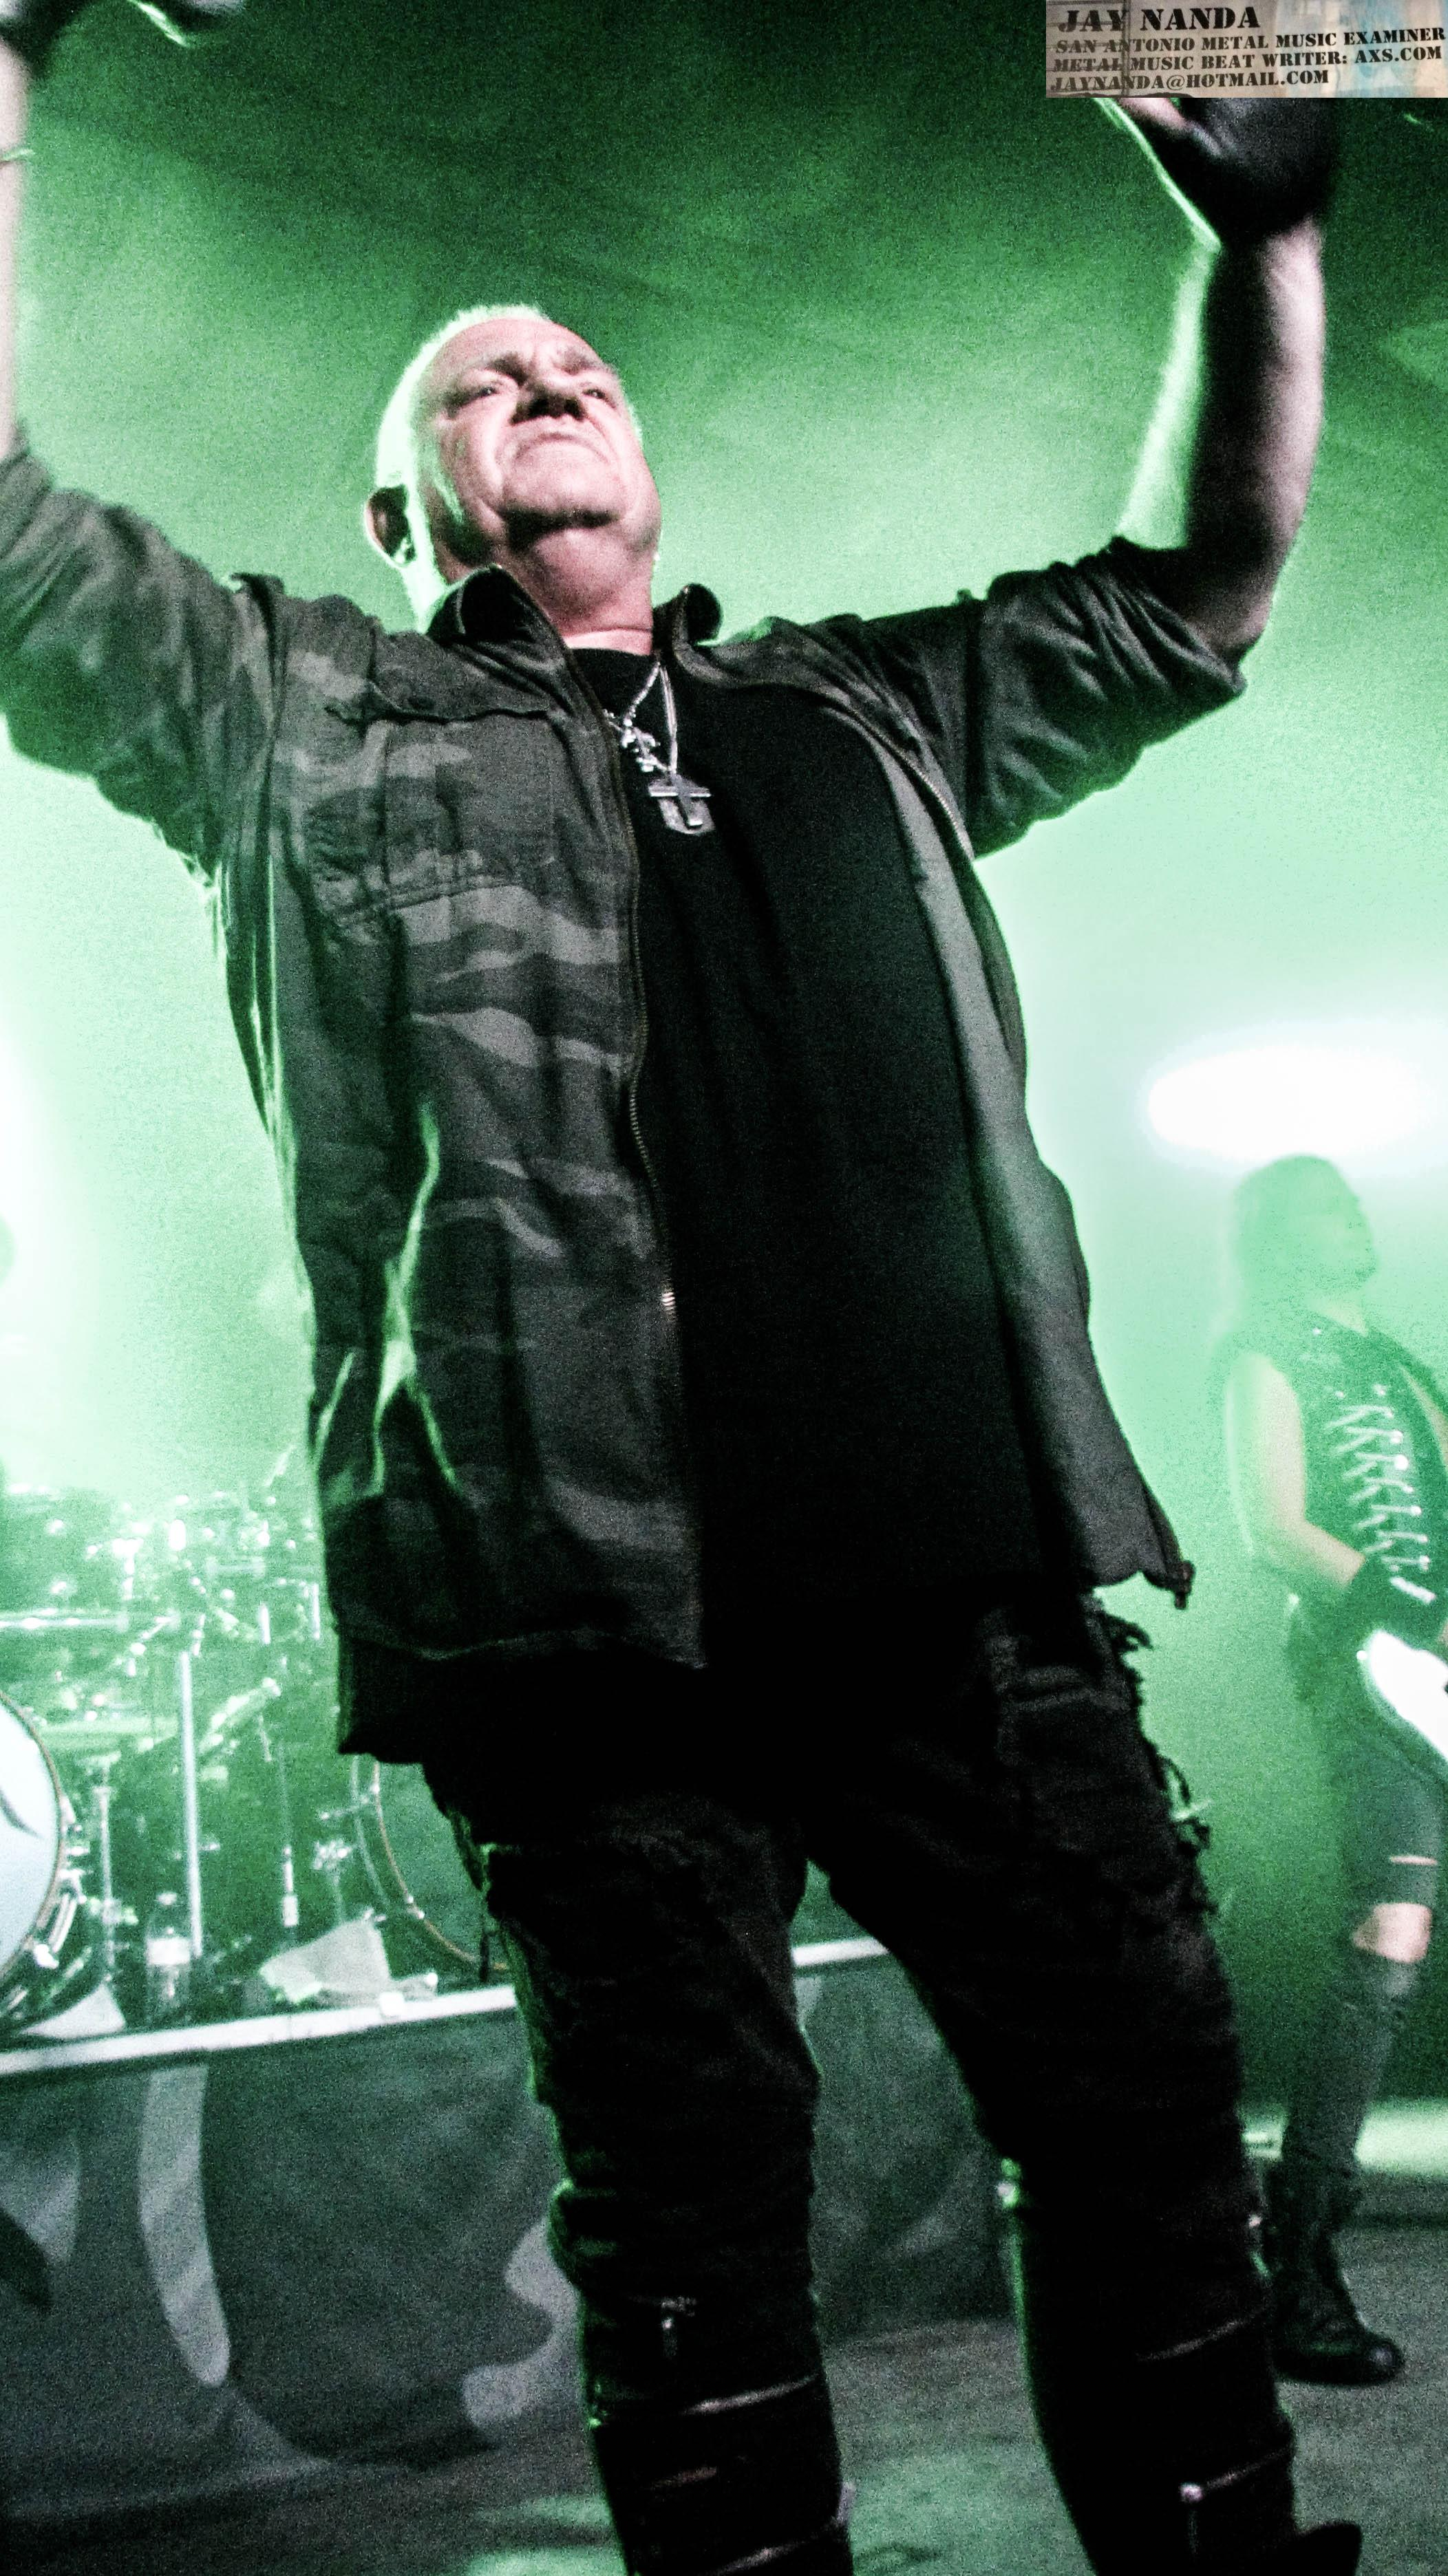 Dirkschneider and his crew performed 20 songs on the night.